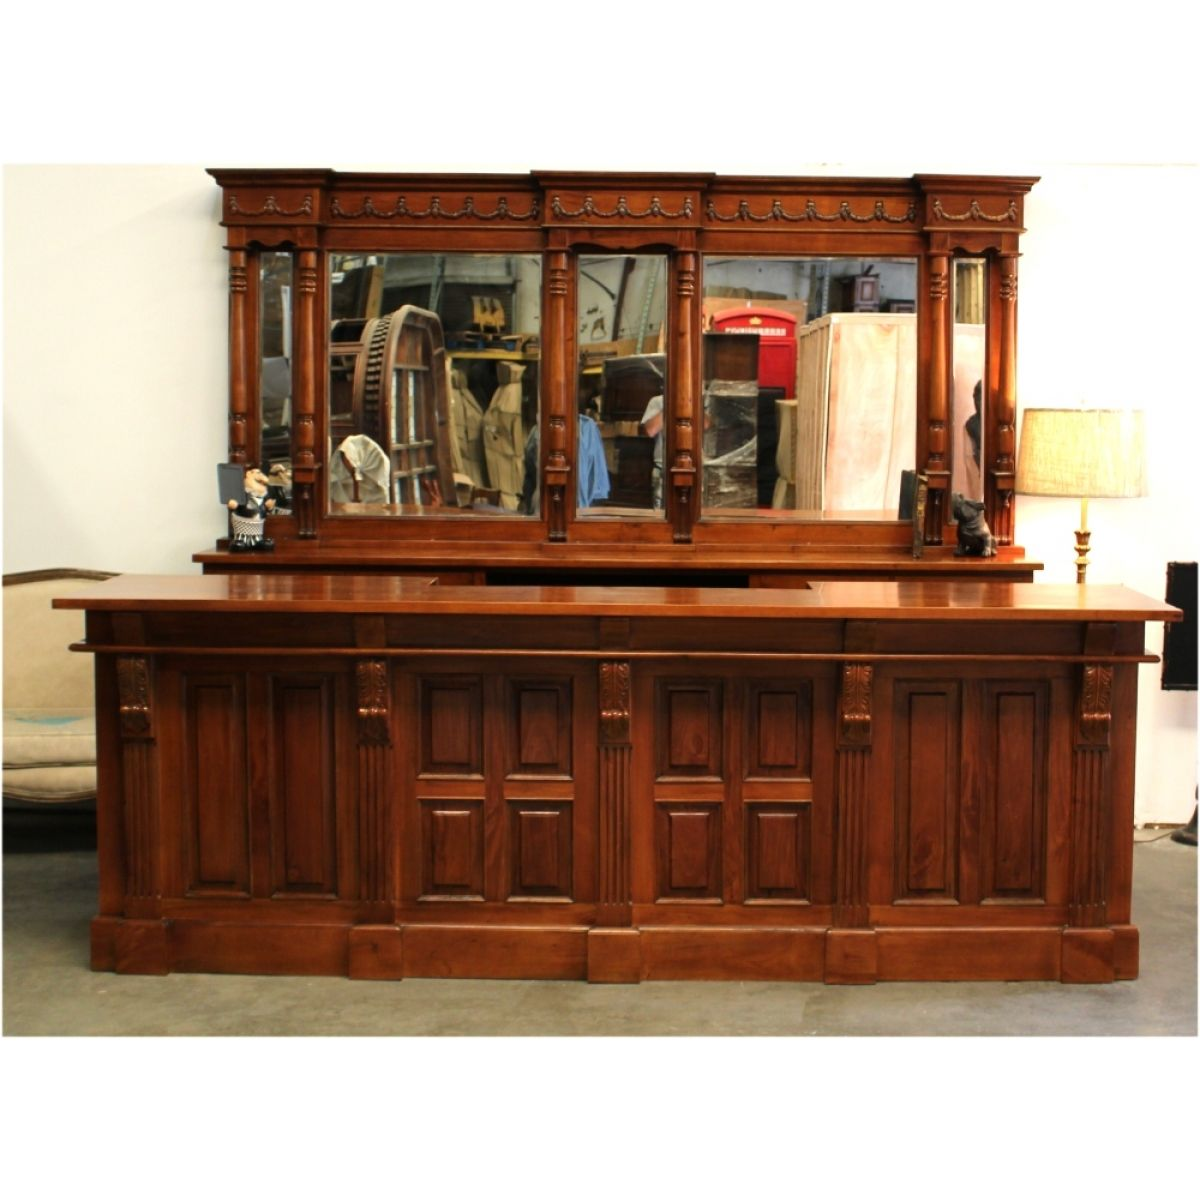 wallpaper fresh bar photos full awesome than for elegant furniture sale perfect wine hd of home modern contemporary storage reviews sets combinations avalon back with simpli compact ideas amp hutch